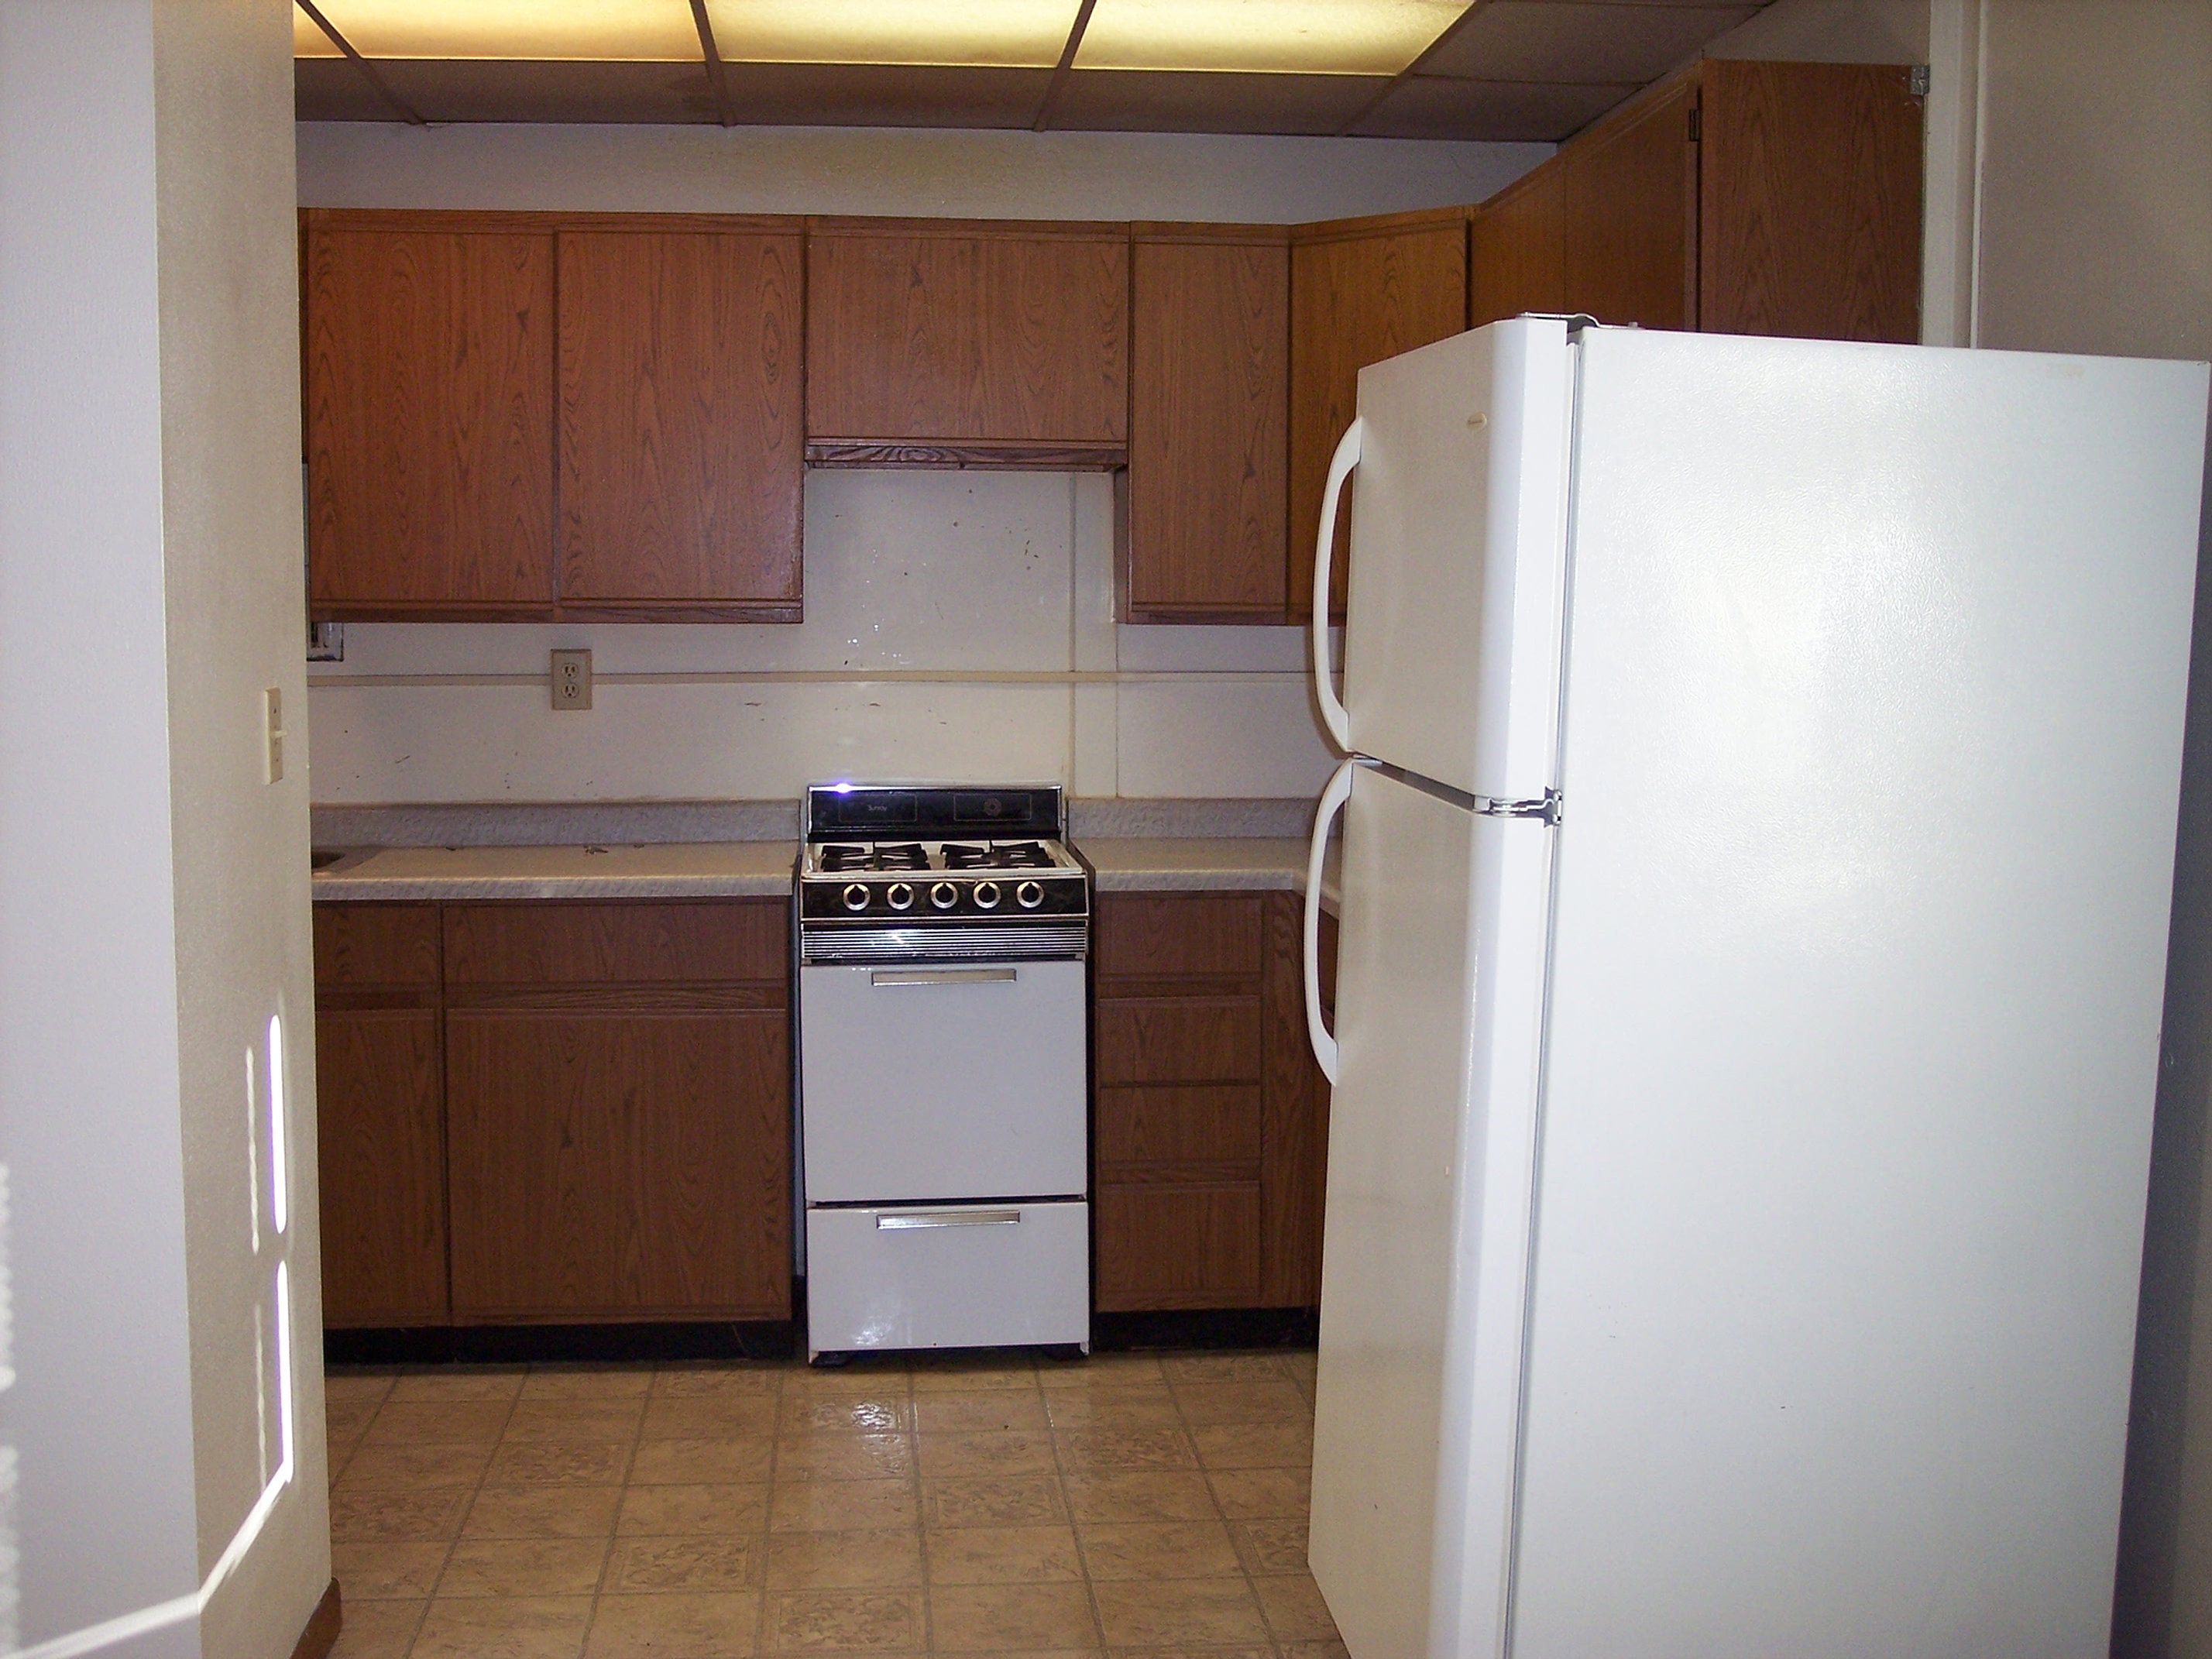 Efficiency Kitchen Upmann Investments Lena Efficiency Kitchen